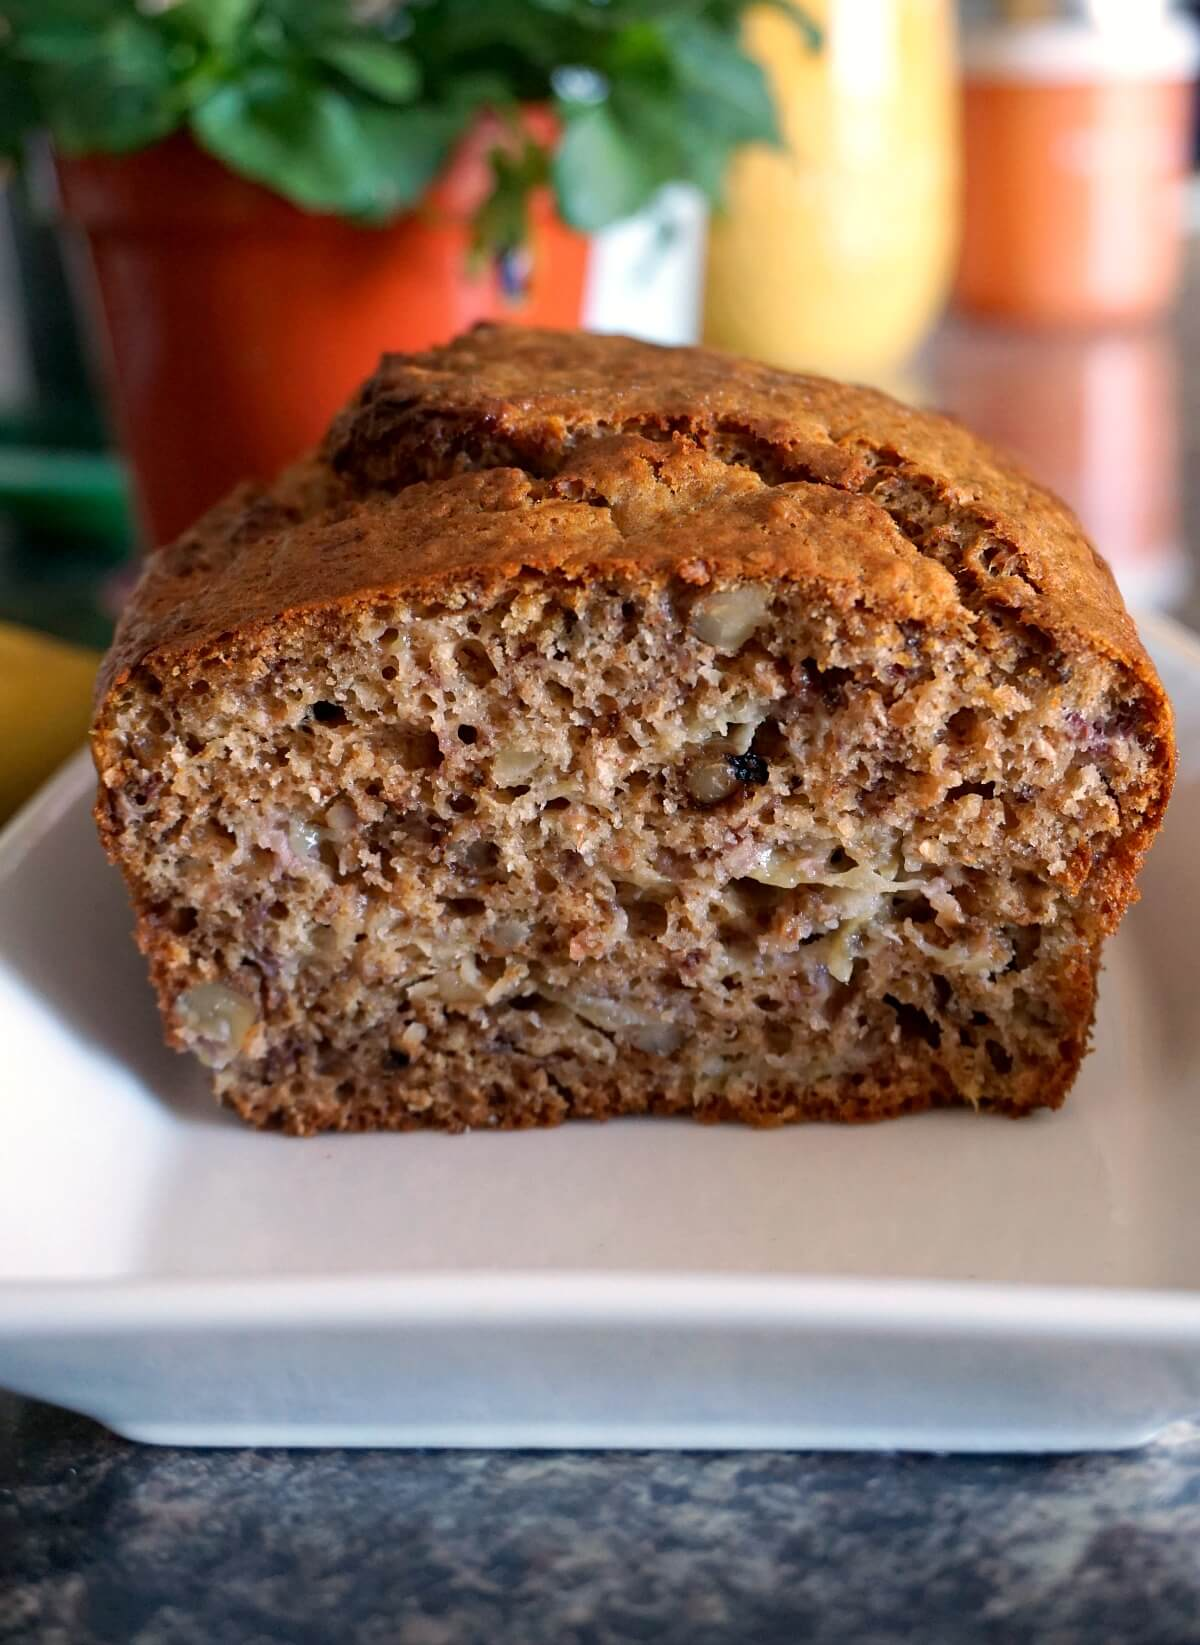 A half banana bread on a white rectangle plate